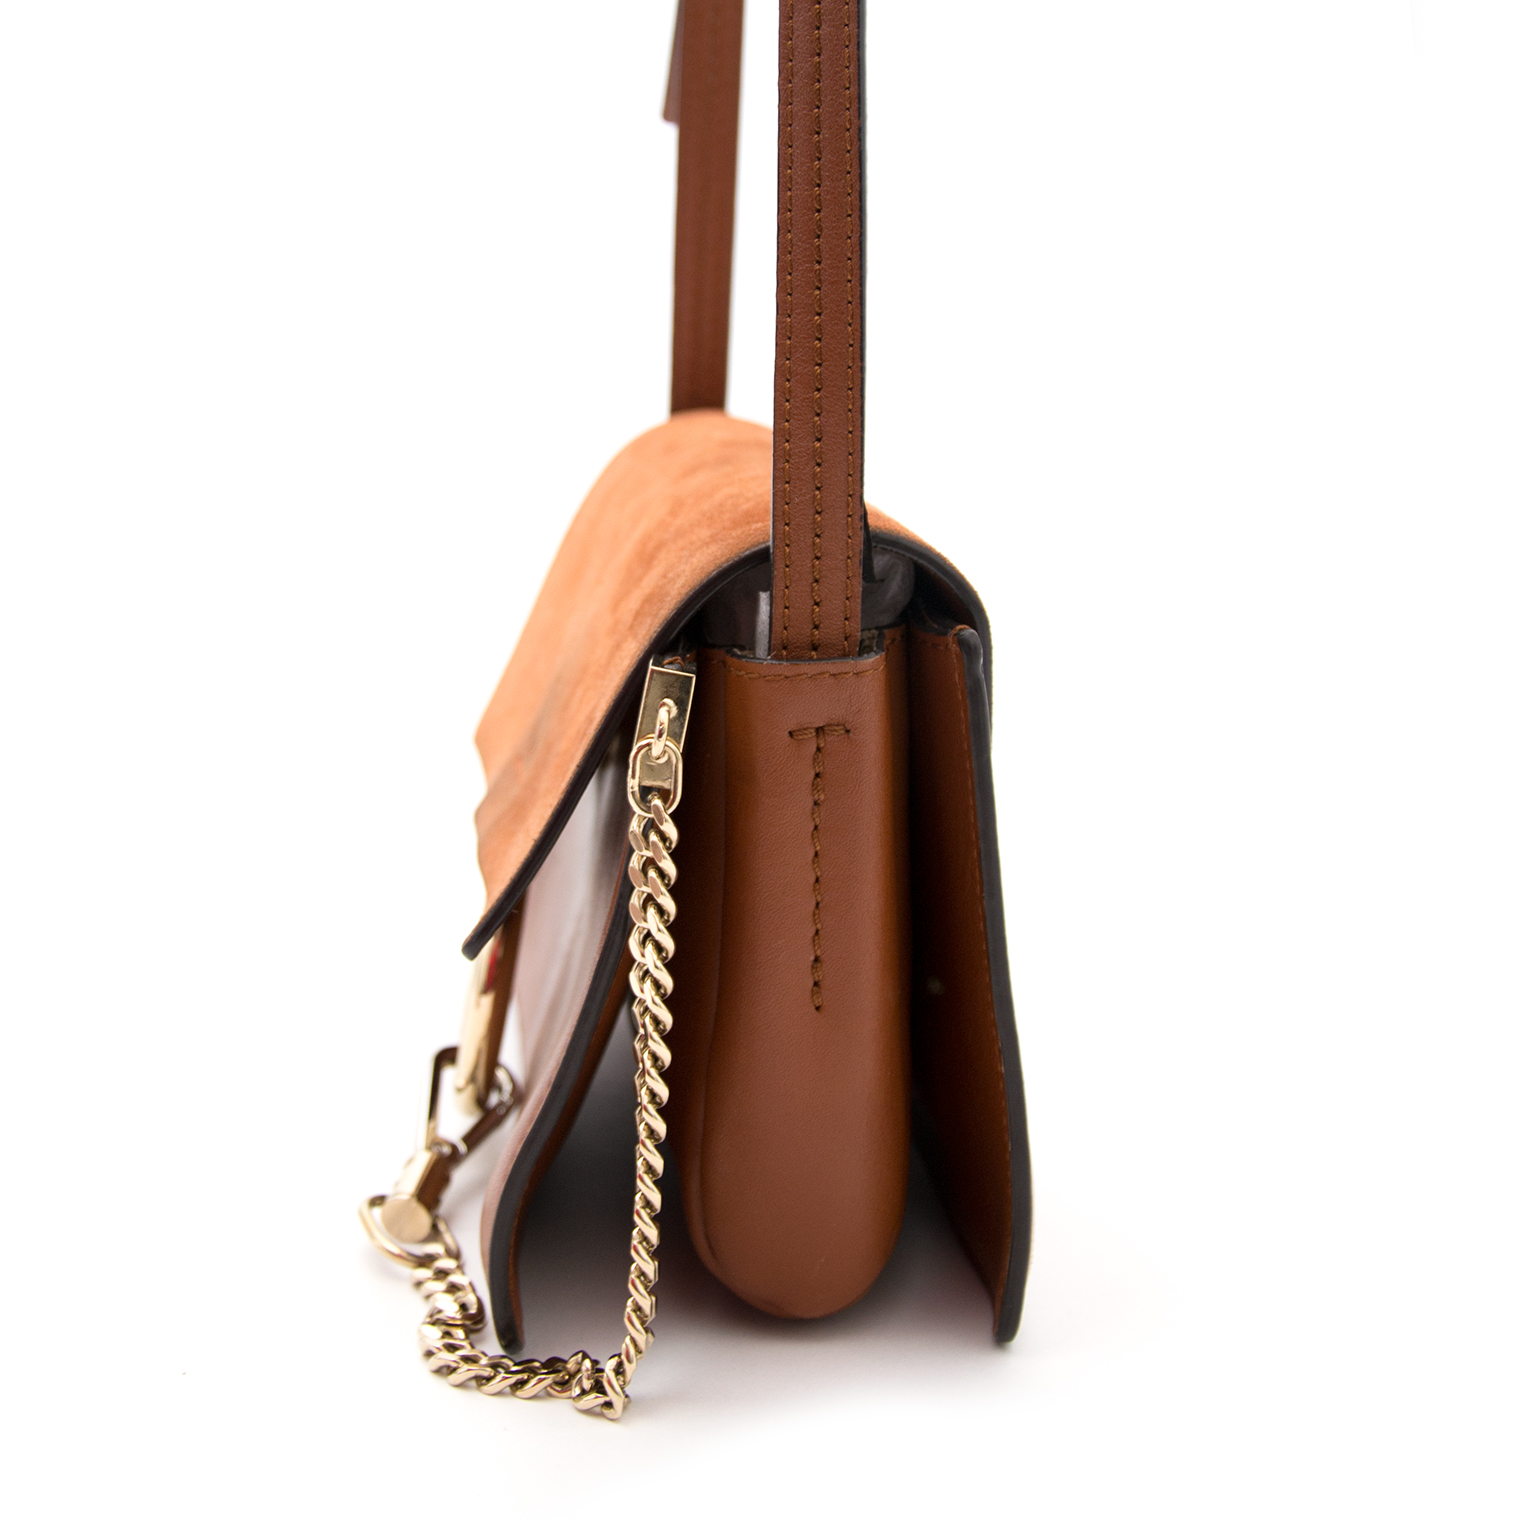 chloé small faye leather suede shoulder bag for the best price online at labellov.com